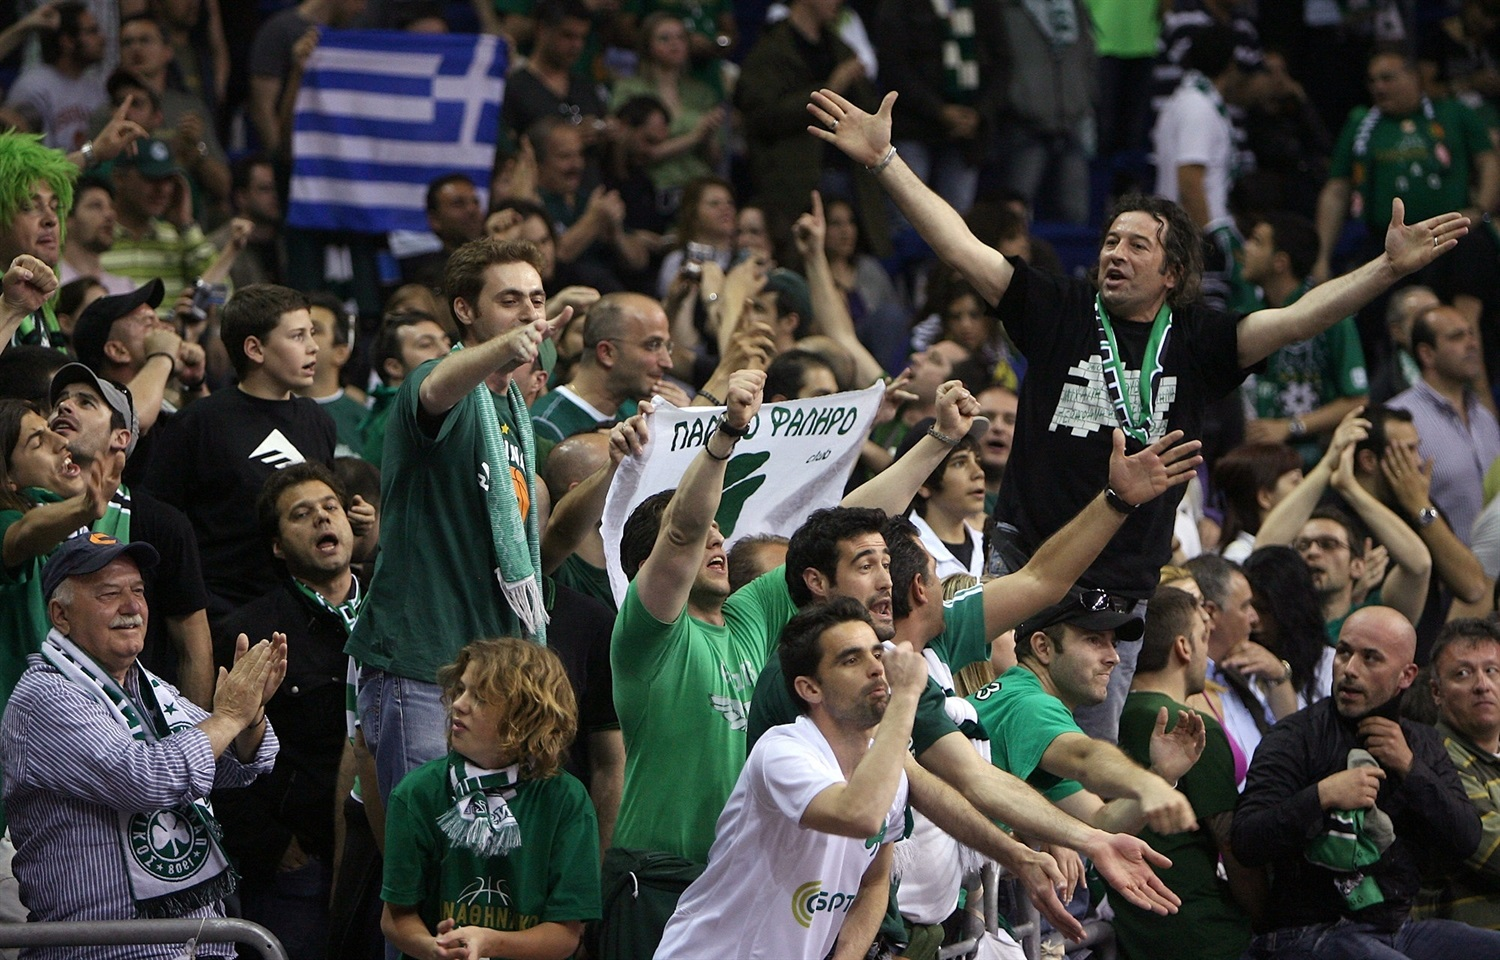 Fans - Panathinaikos Athens - Final Four Berlin 2009 - EB08